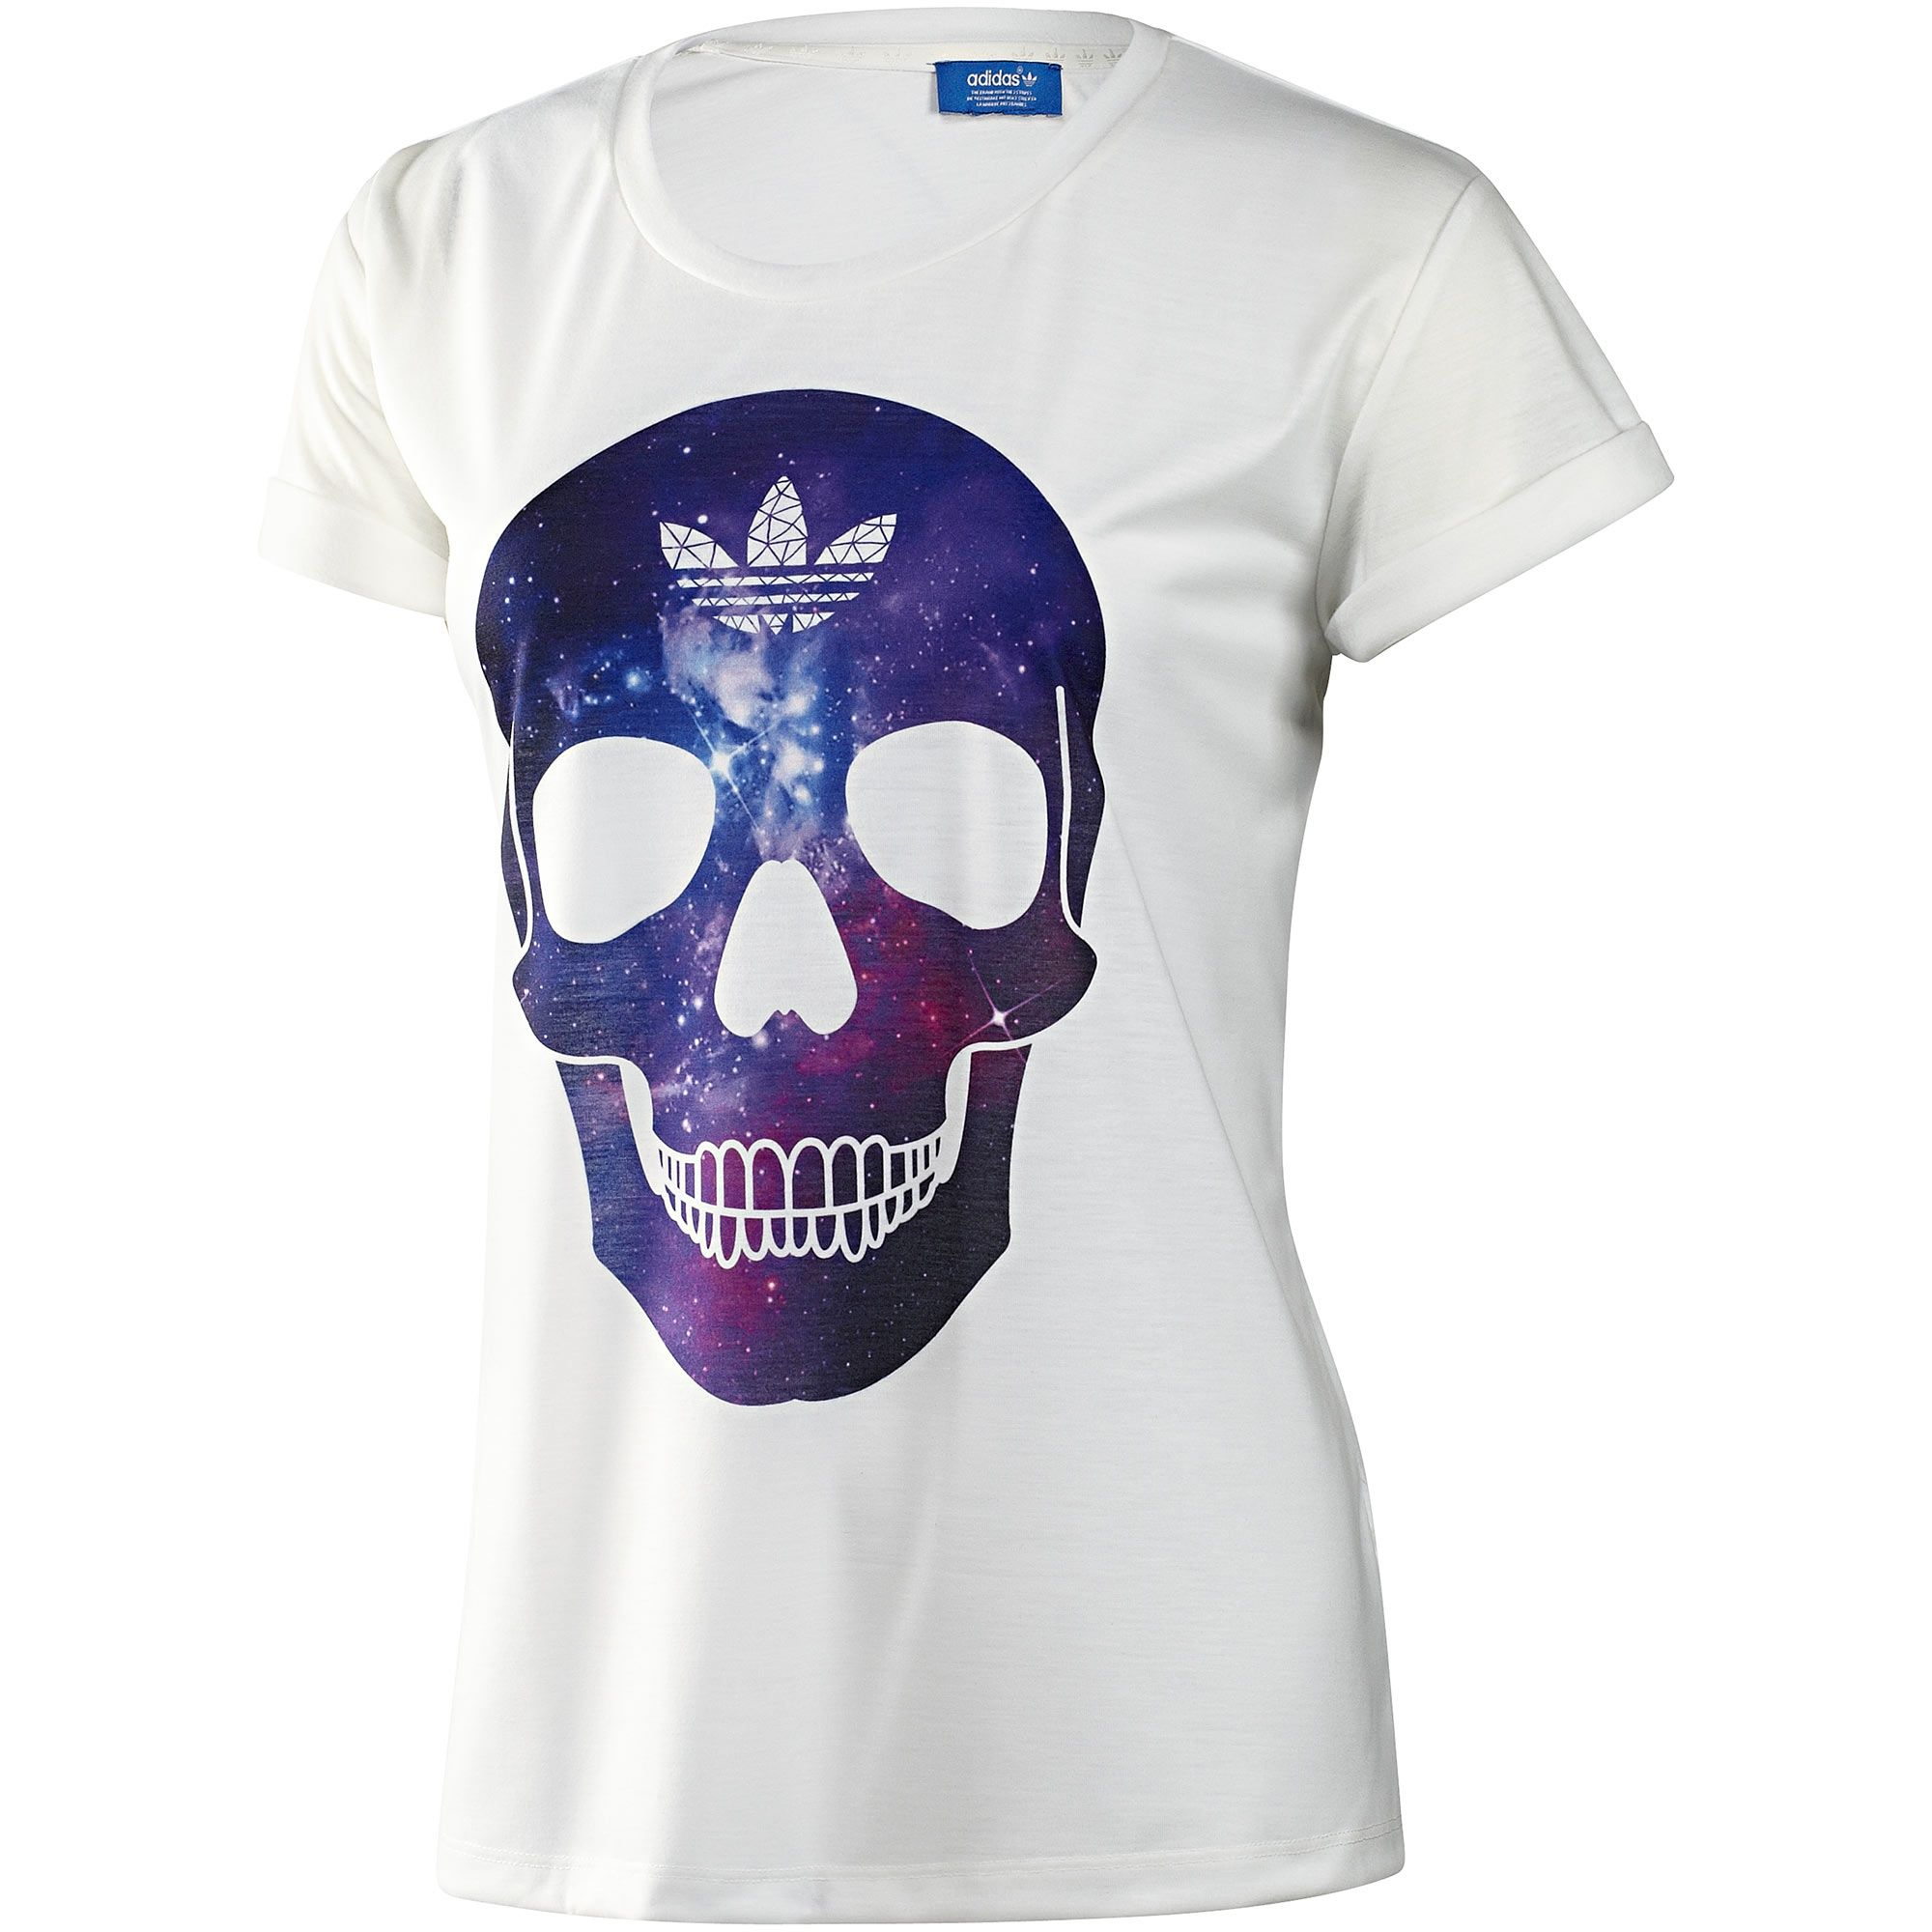 30d6456acded1c adidas Originals Space Skull Tee, £25 | NO SWEAT | Fashion, Adidas ...